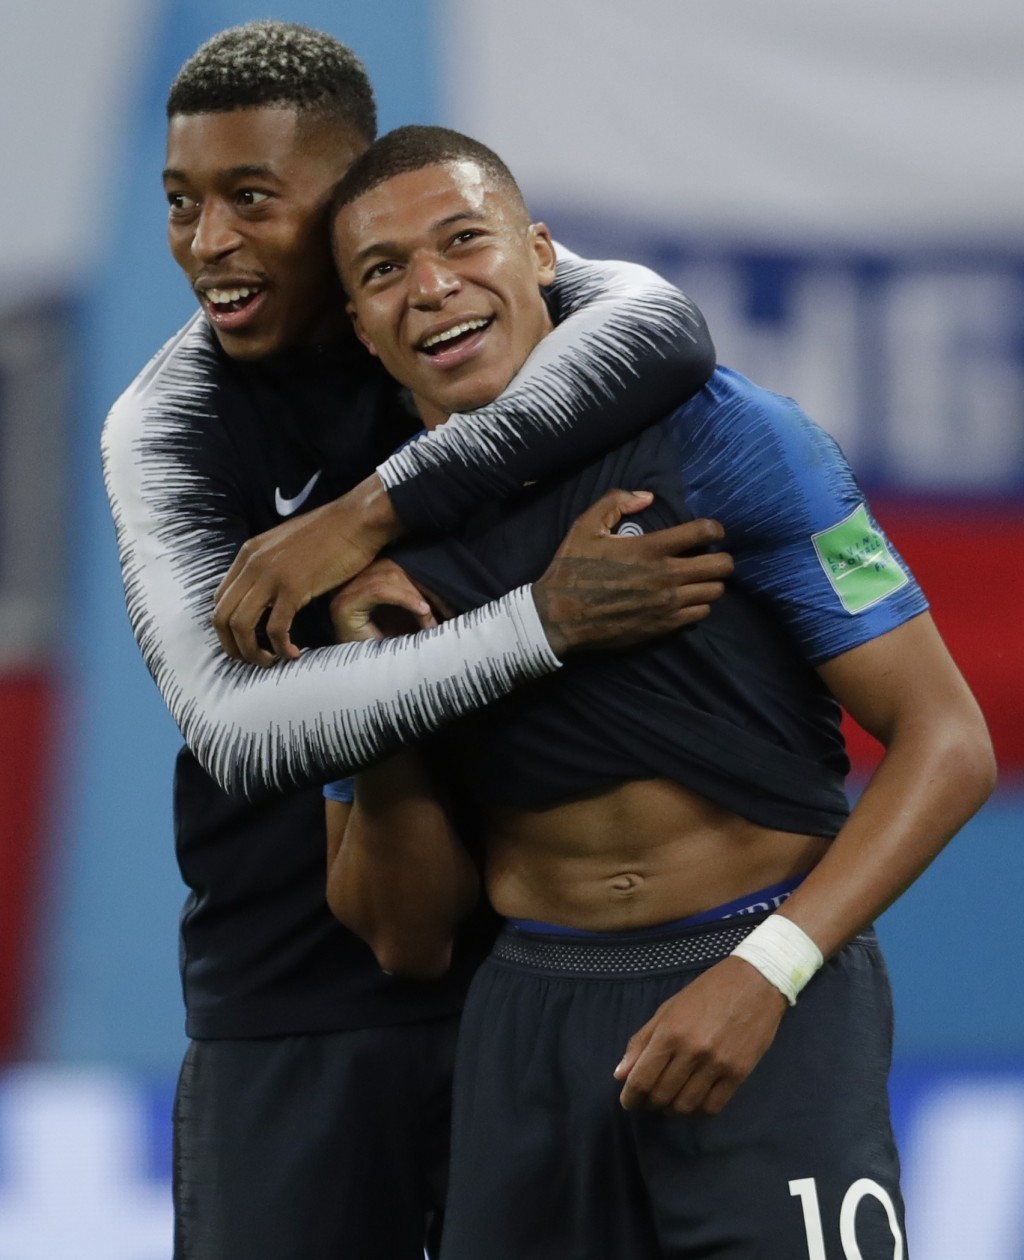 France's Kylian Mbappe, right, and Presnel Kimpembe celebrate at the end of the semifinal match between France and Belgium at the 2018 soccer World Cu